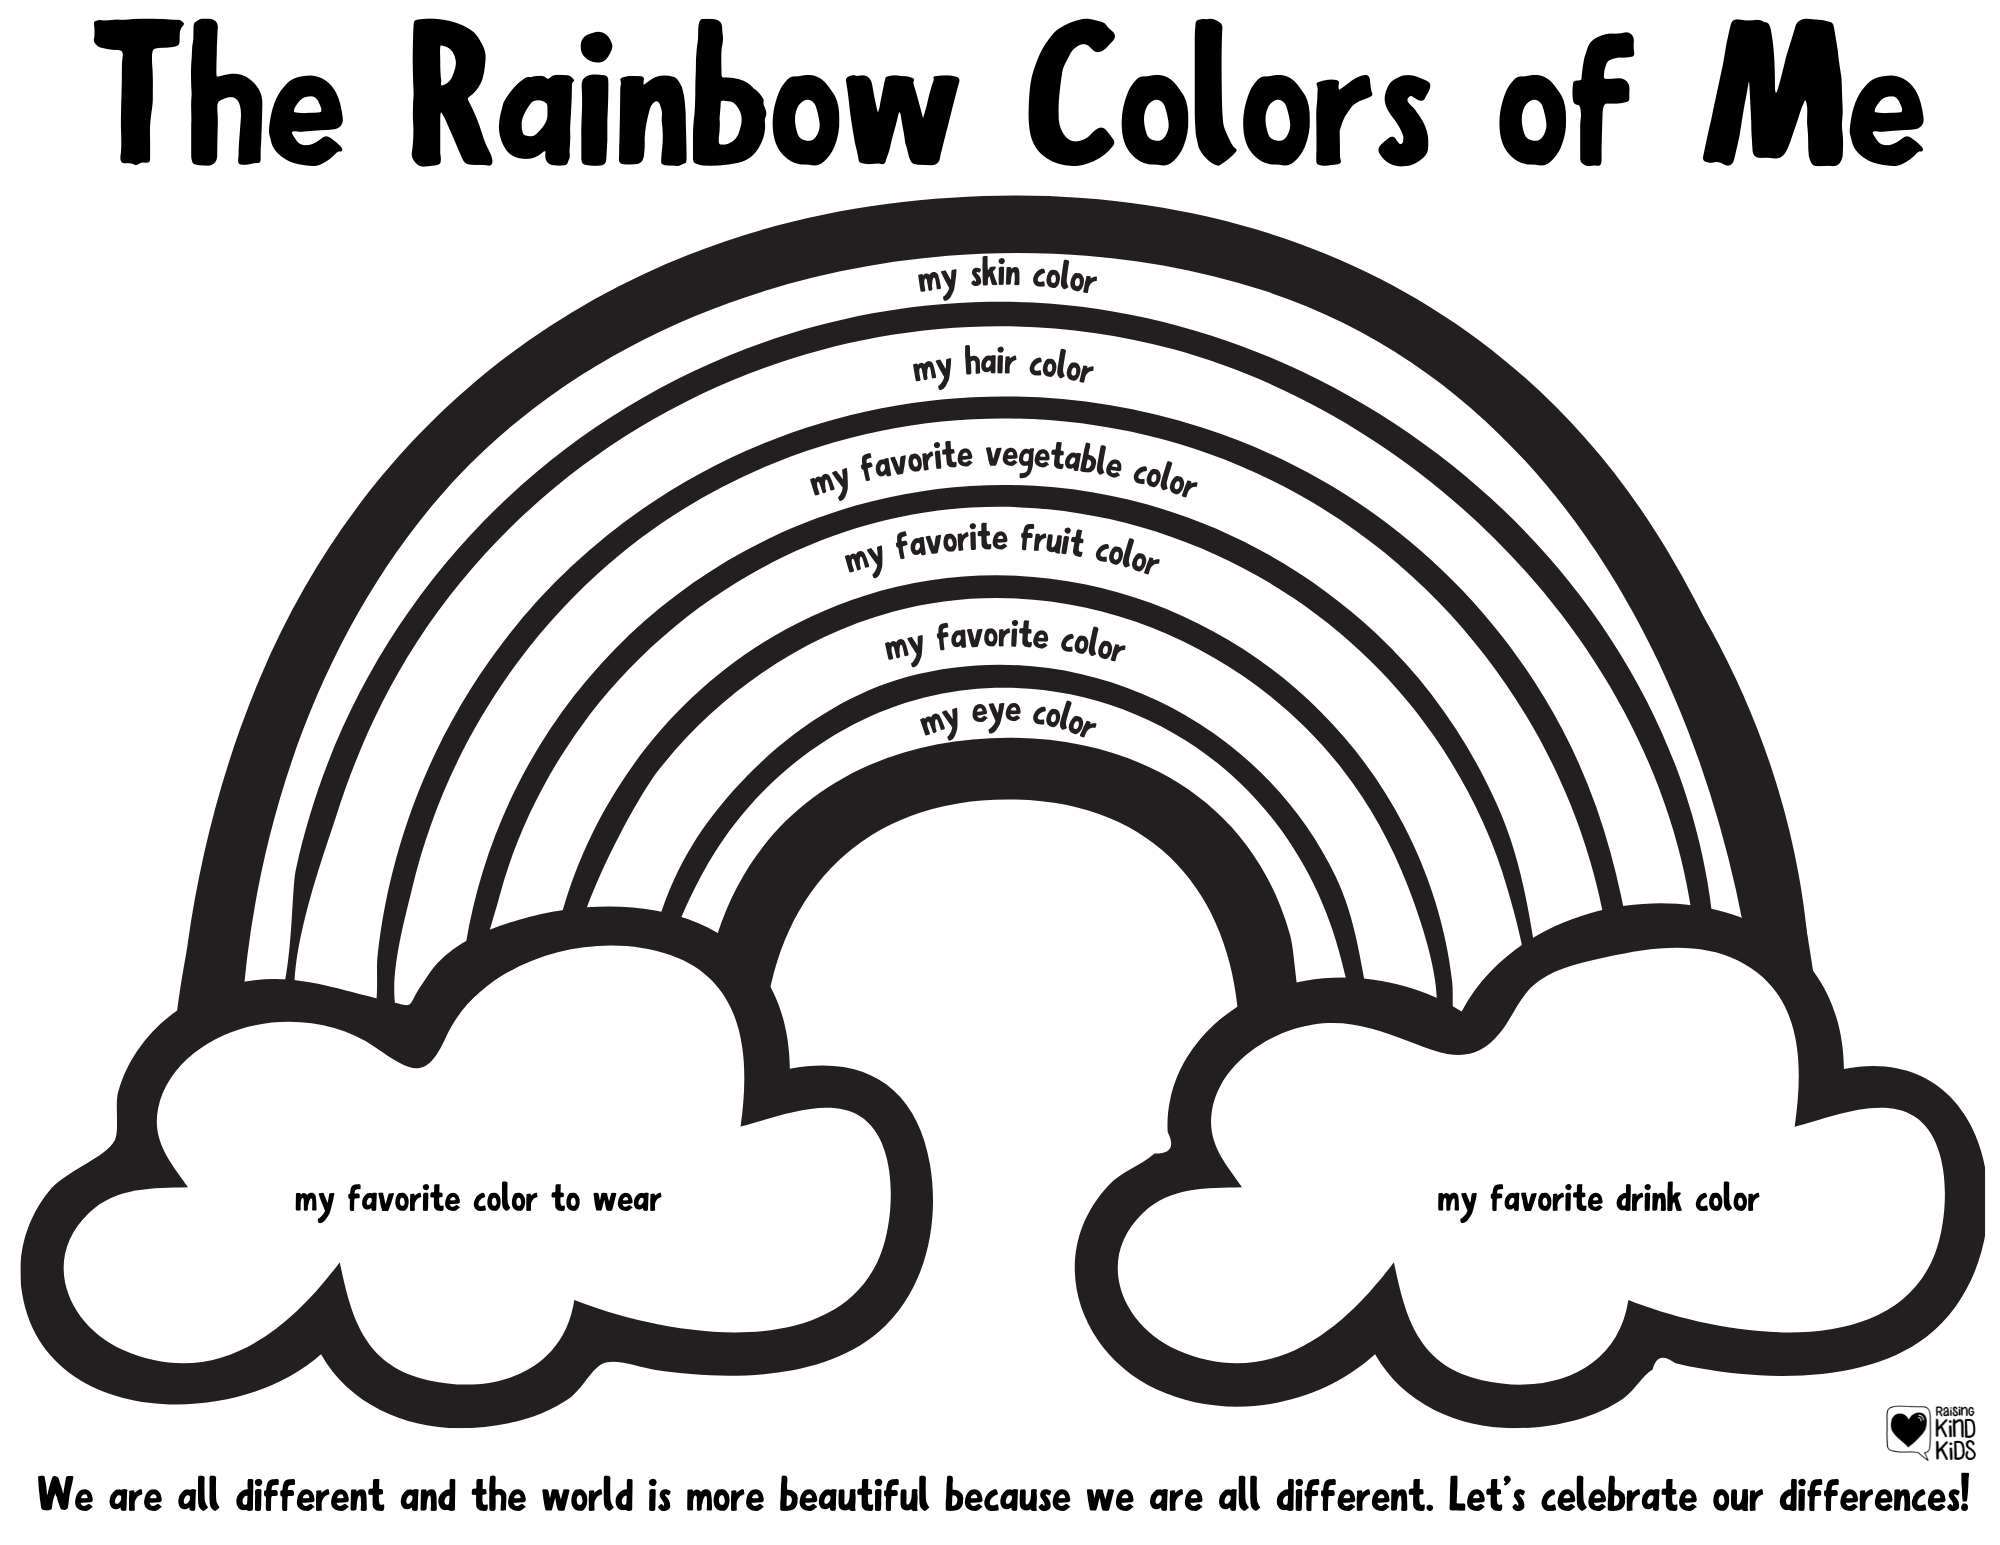 Celebrate Diversity and our differences with this Rainbows Colors of Me printable. Kids can color all the colors of them.